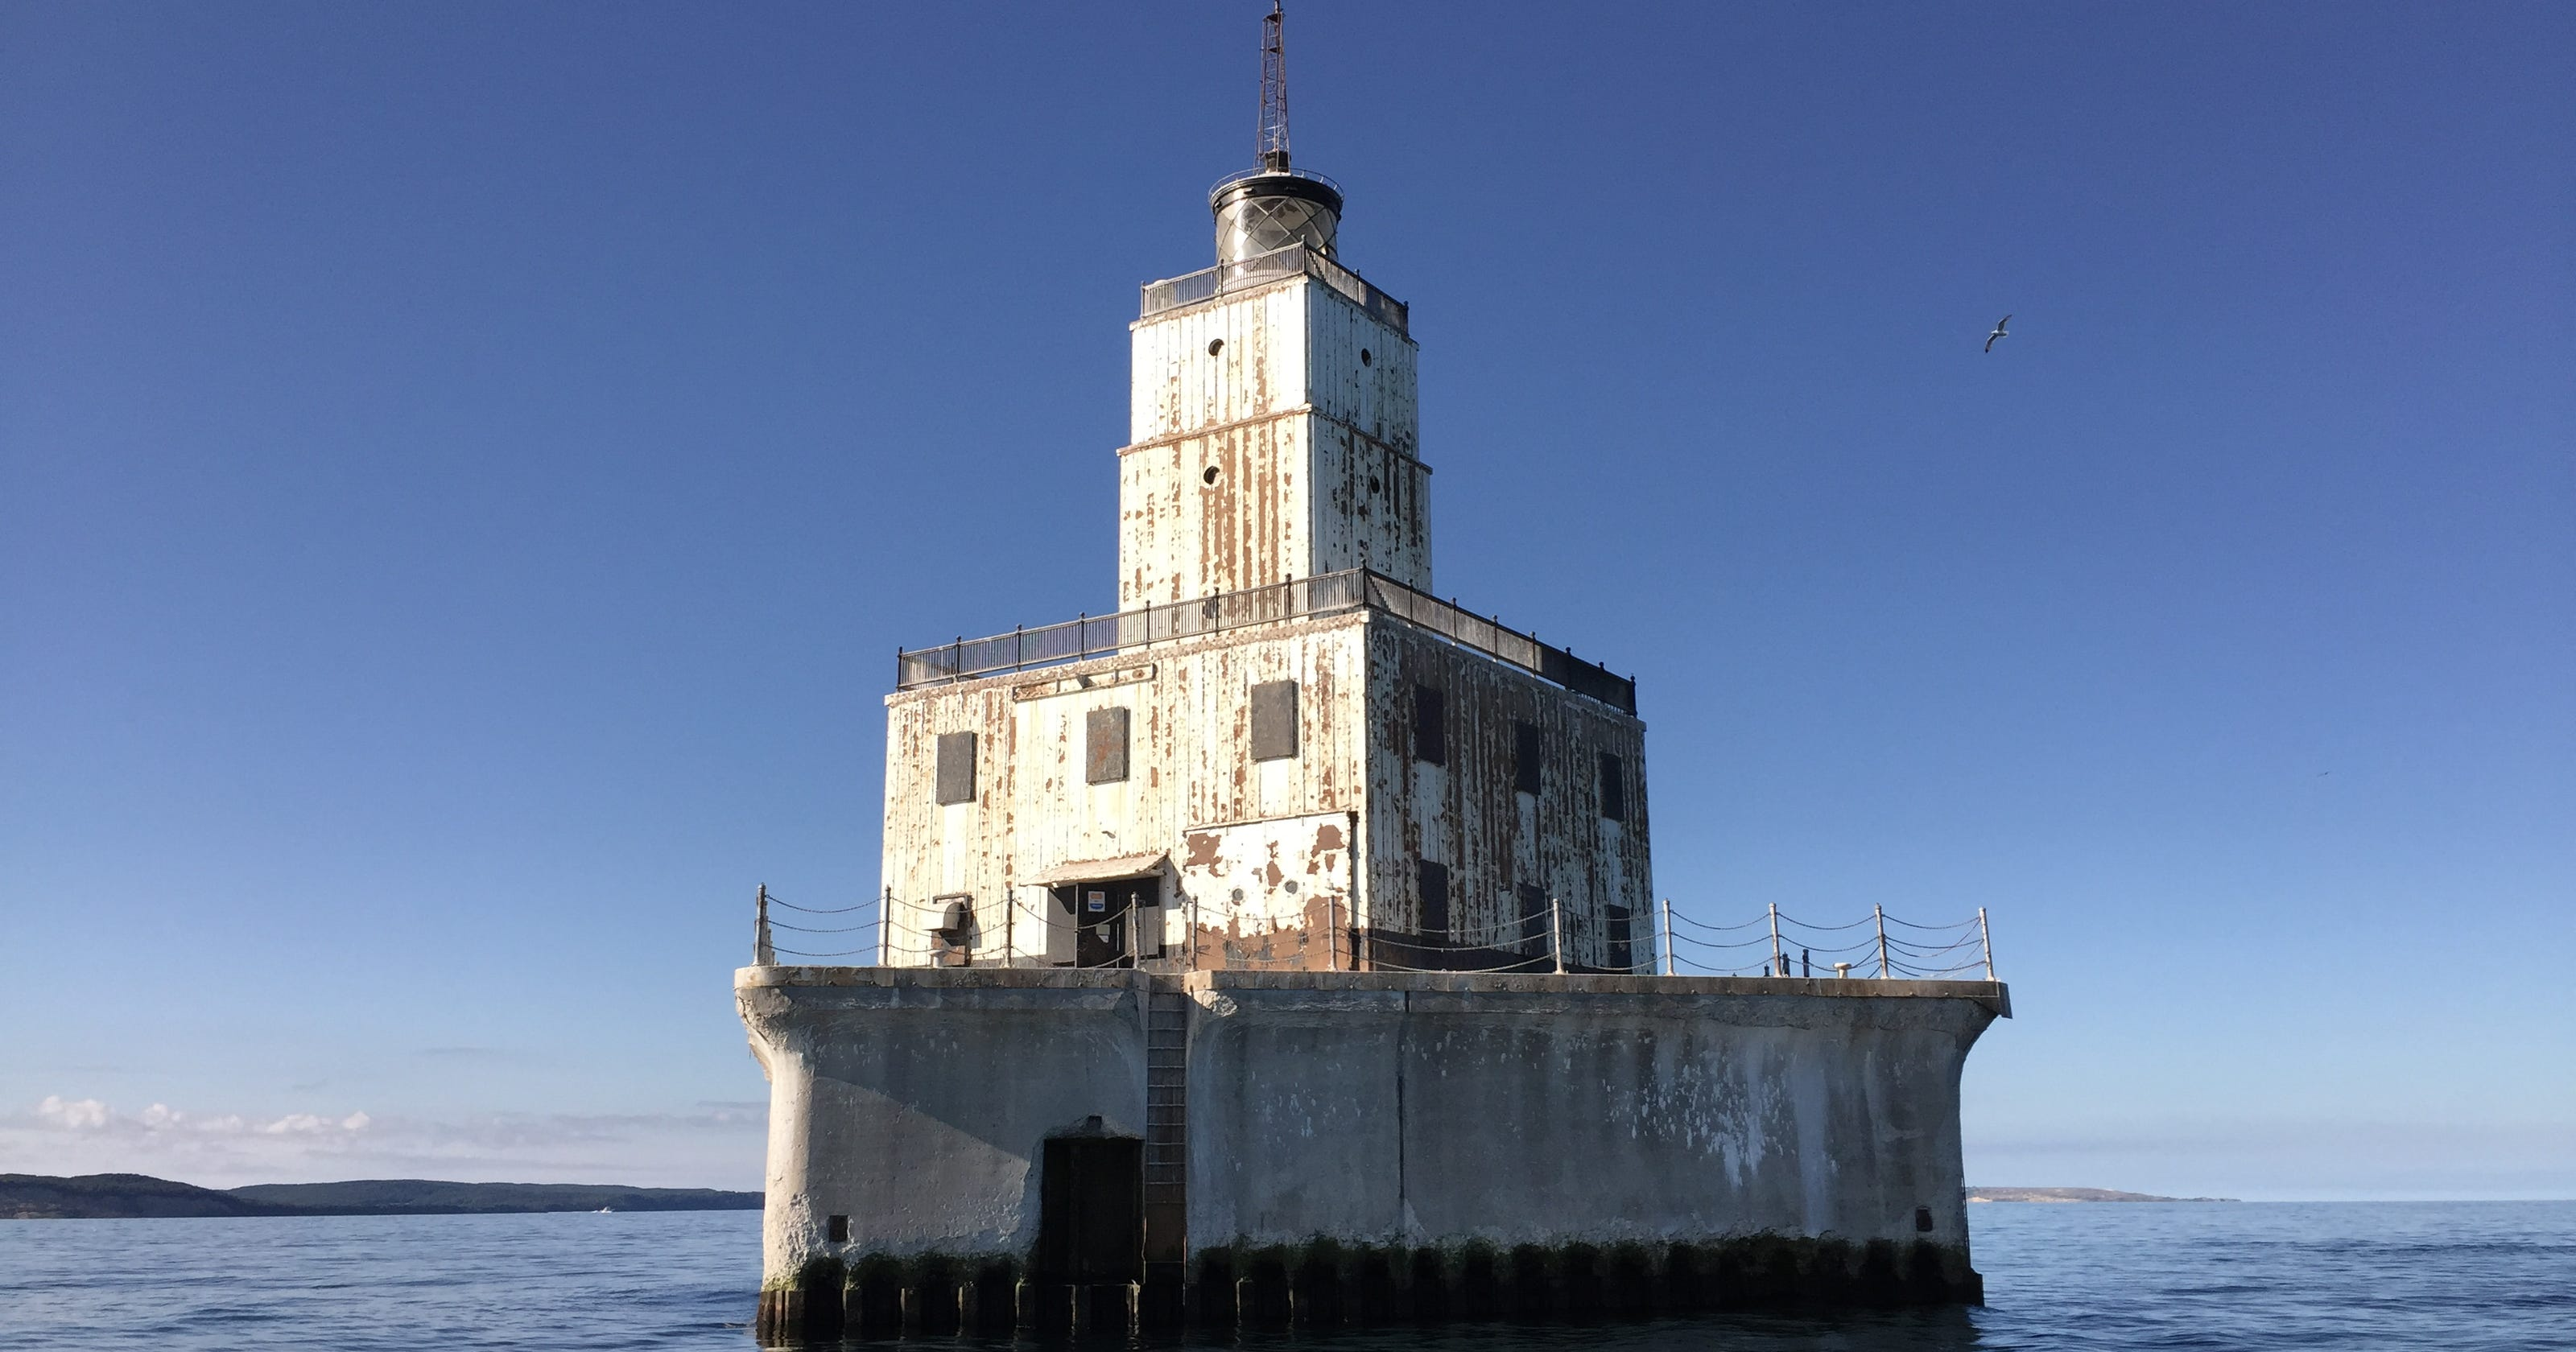 For sale: 4 offshore Lake Michigan lighthouses